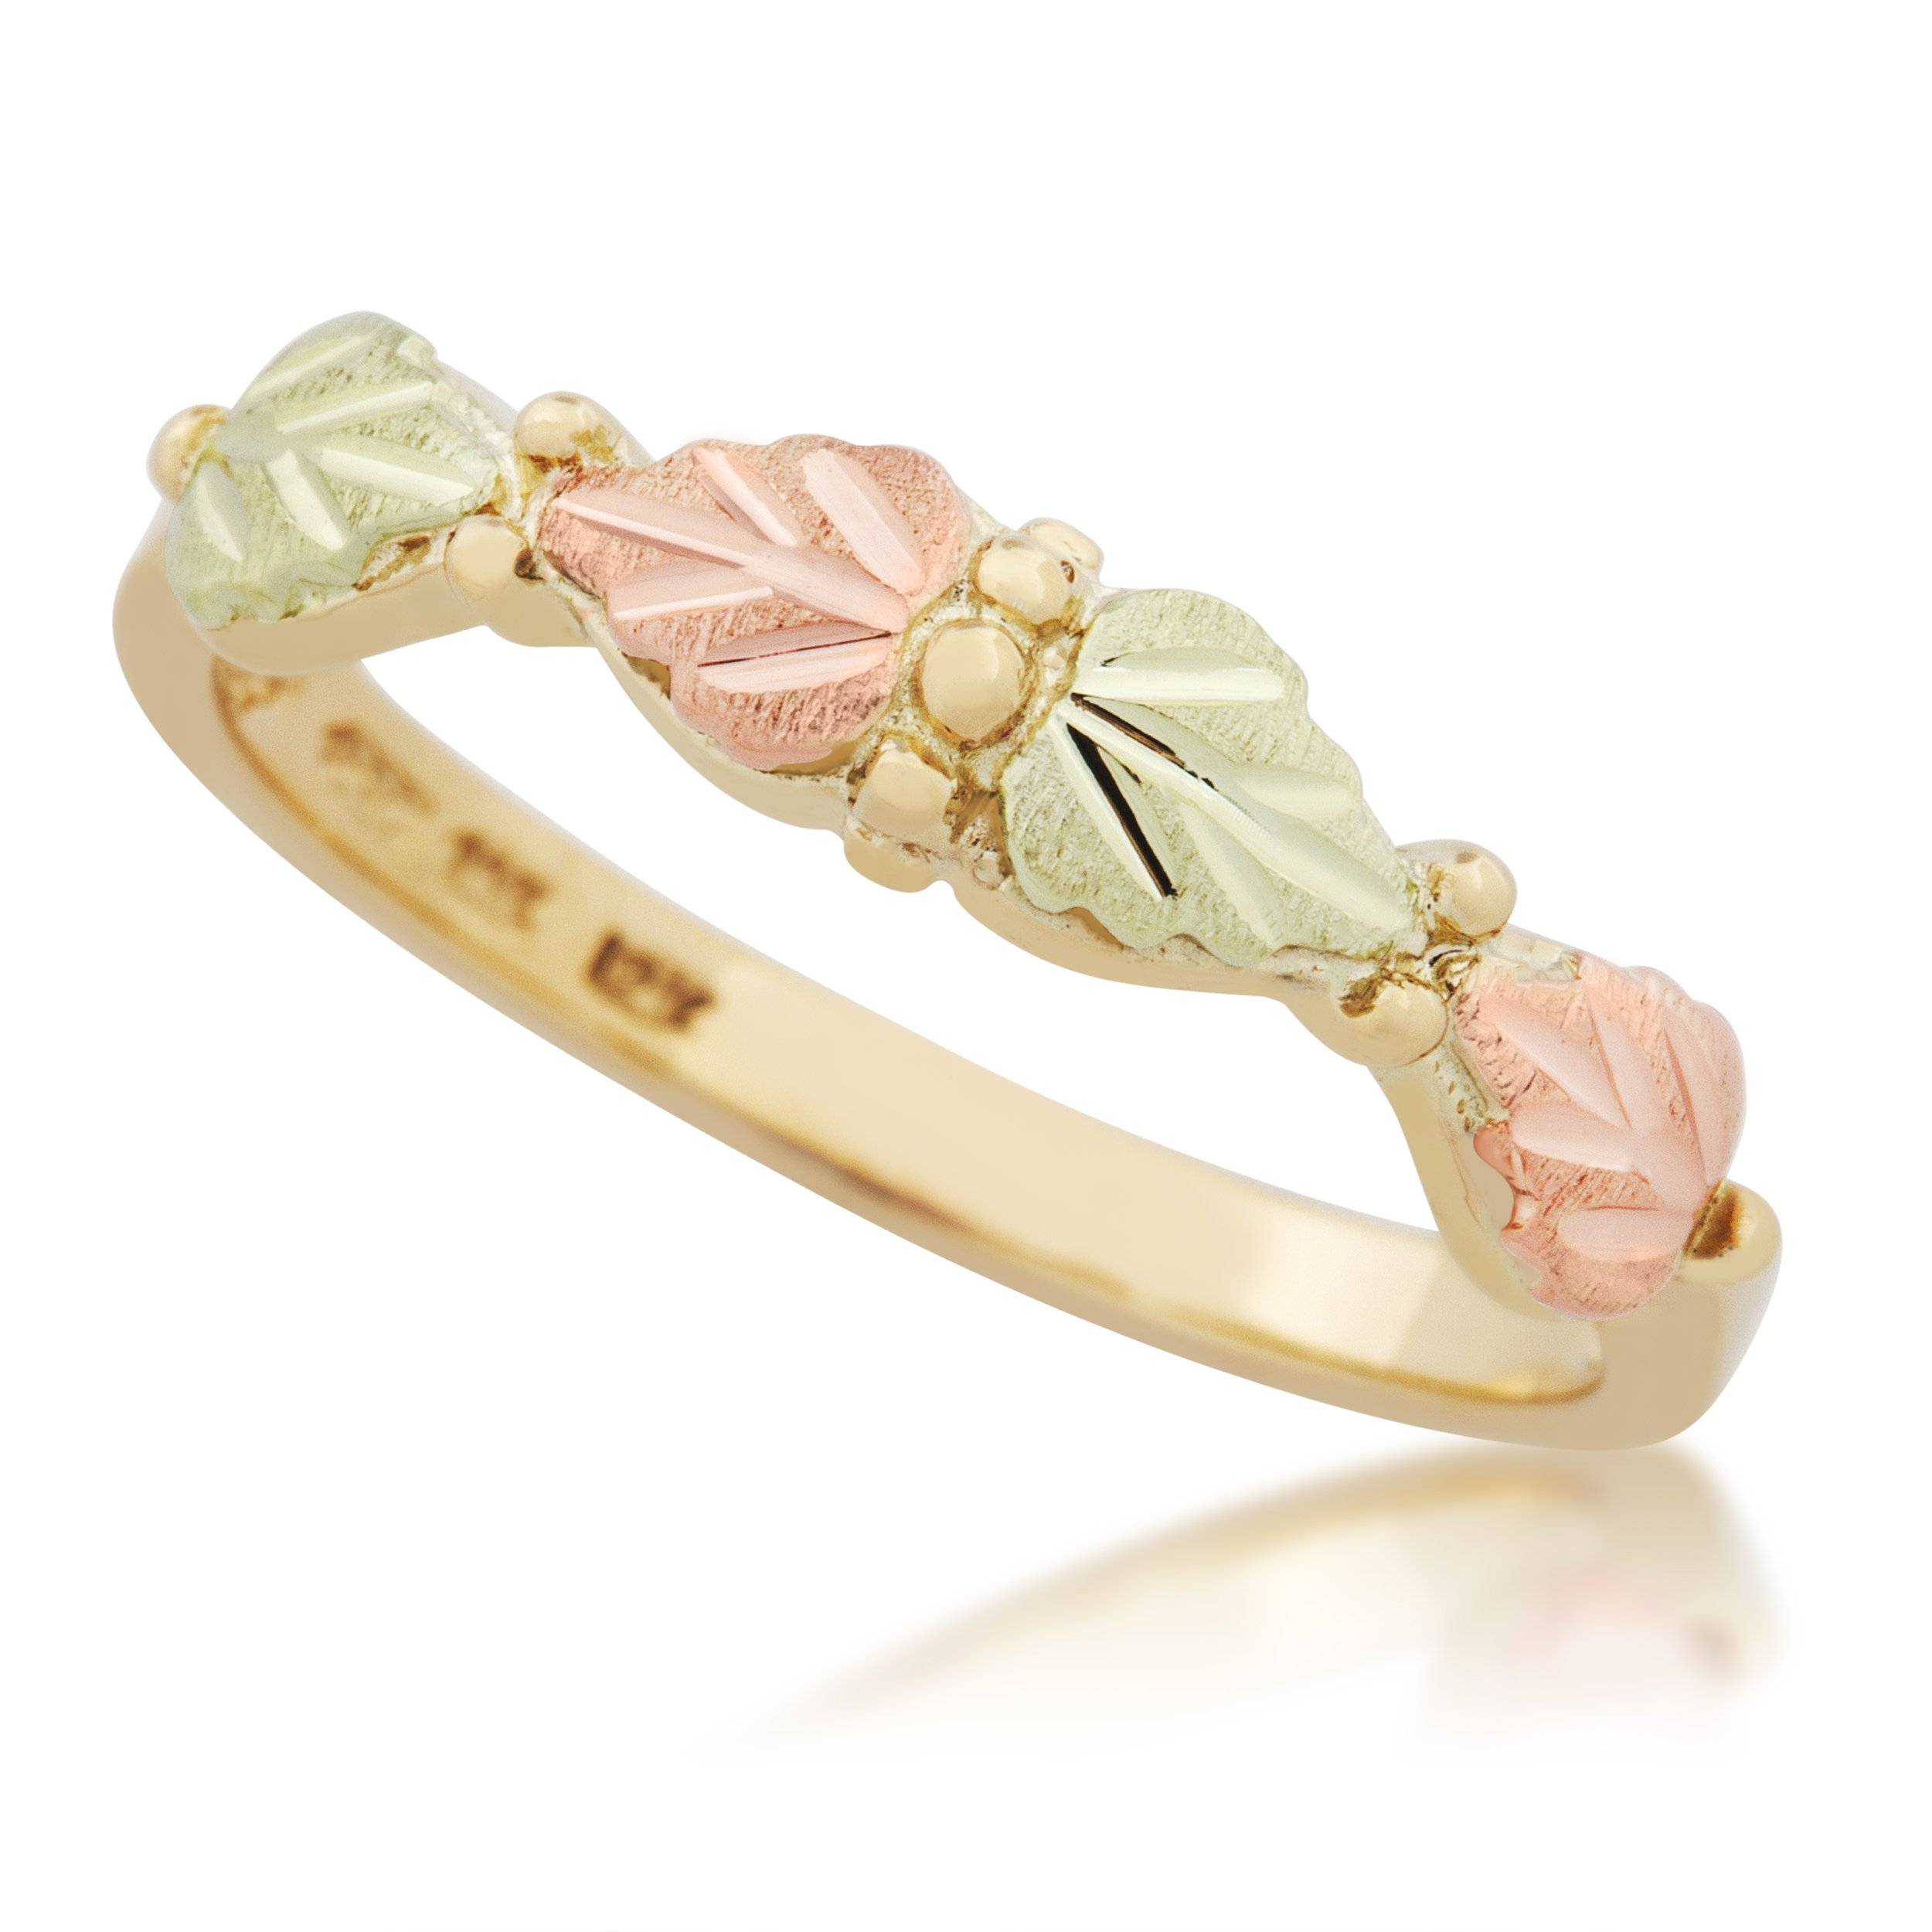 Petite Black Hills Gold Band, 10k Yellow Gold, 12k Pink and Green Gold, Size 5